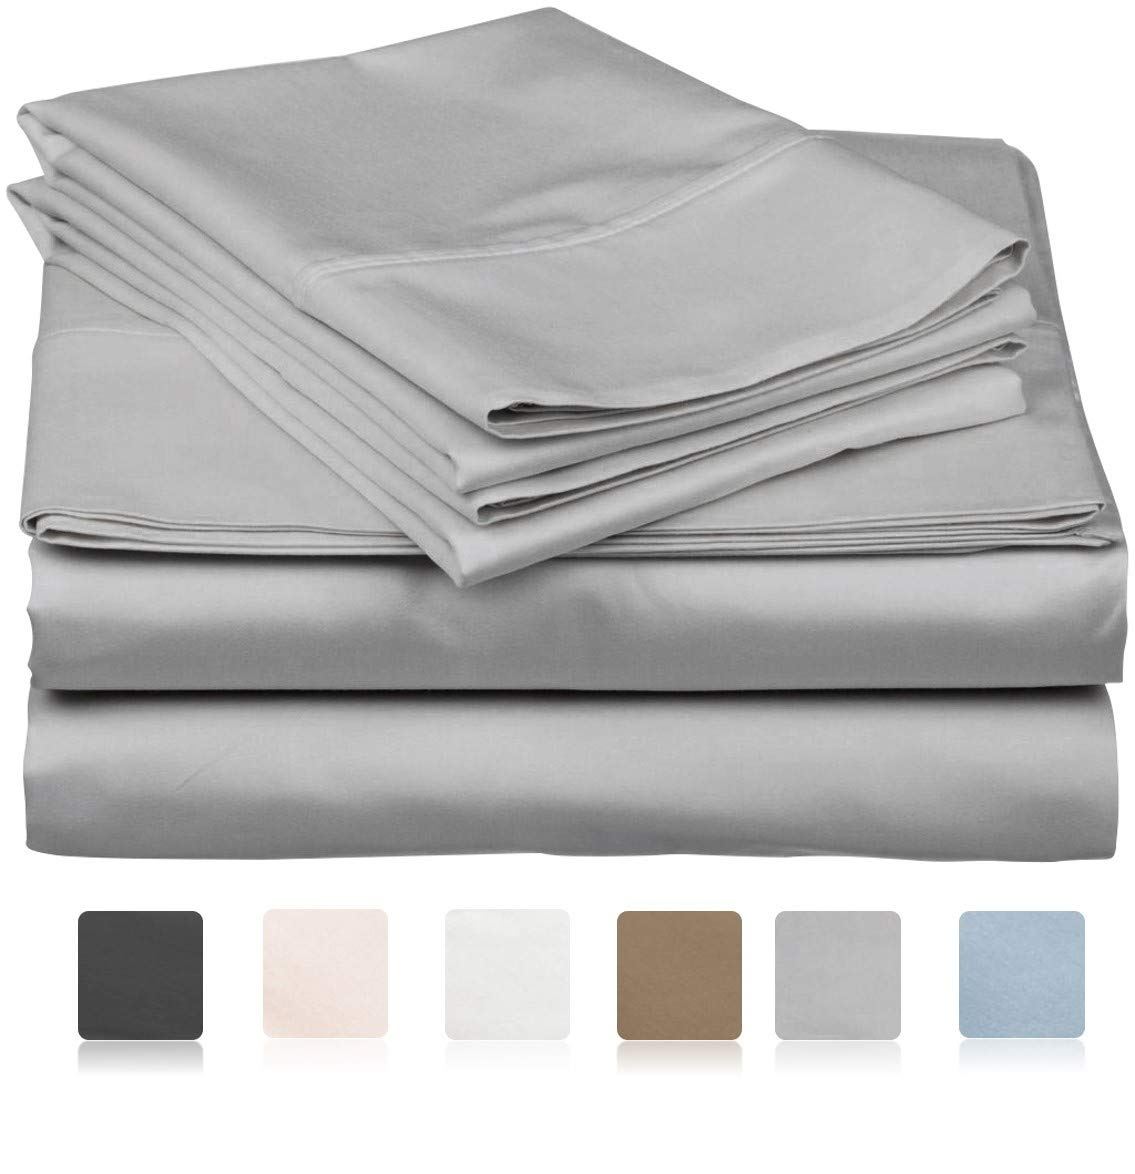 600 Thread Count 100% Long Staple Soft Egyptian Cotton SheetSet, 4 Piece Set, TWIN SHEETS,upto 17'' Deep Pocket, Smooth & Soft Sateen Weave, Deep Pocket, Luxury Hotel Collection Bedding, SILVER